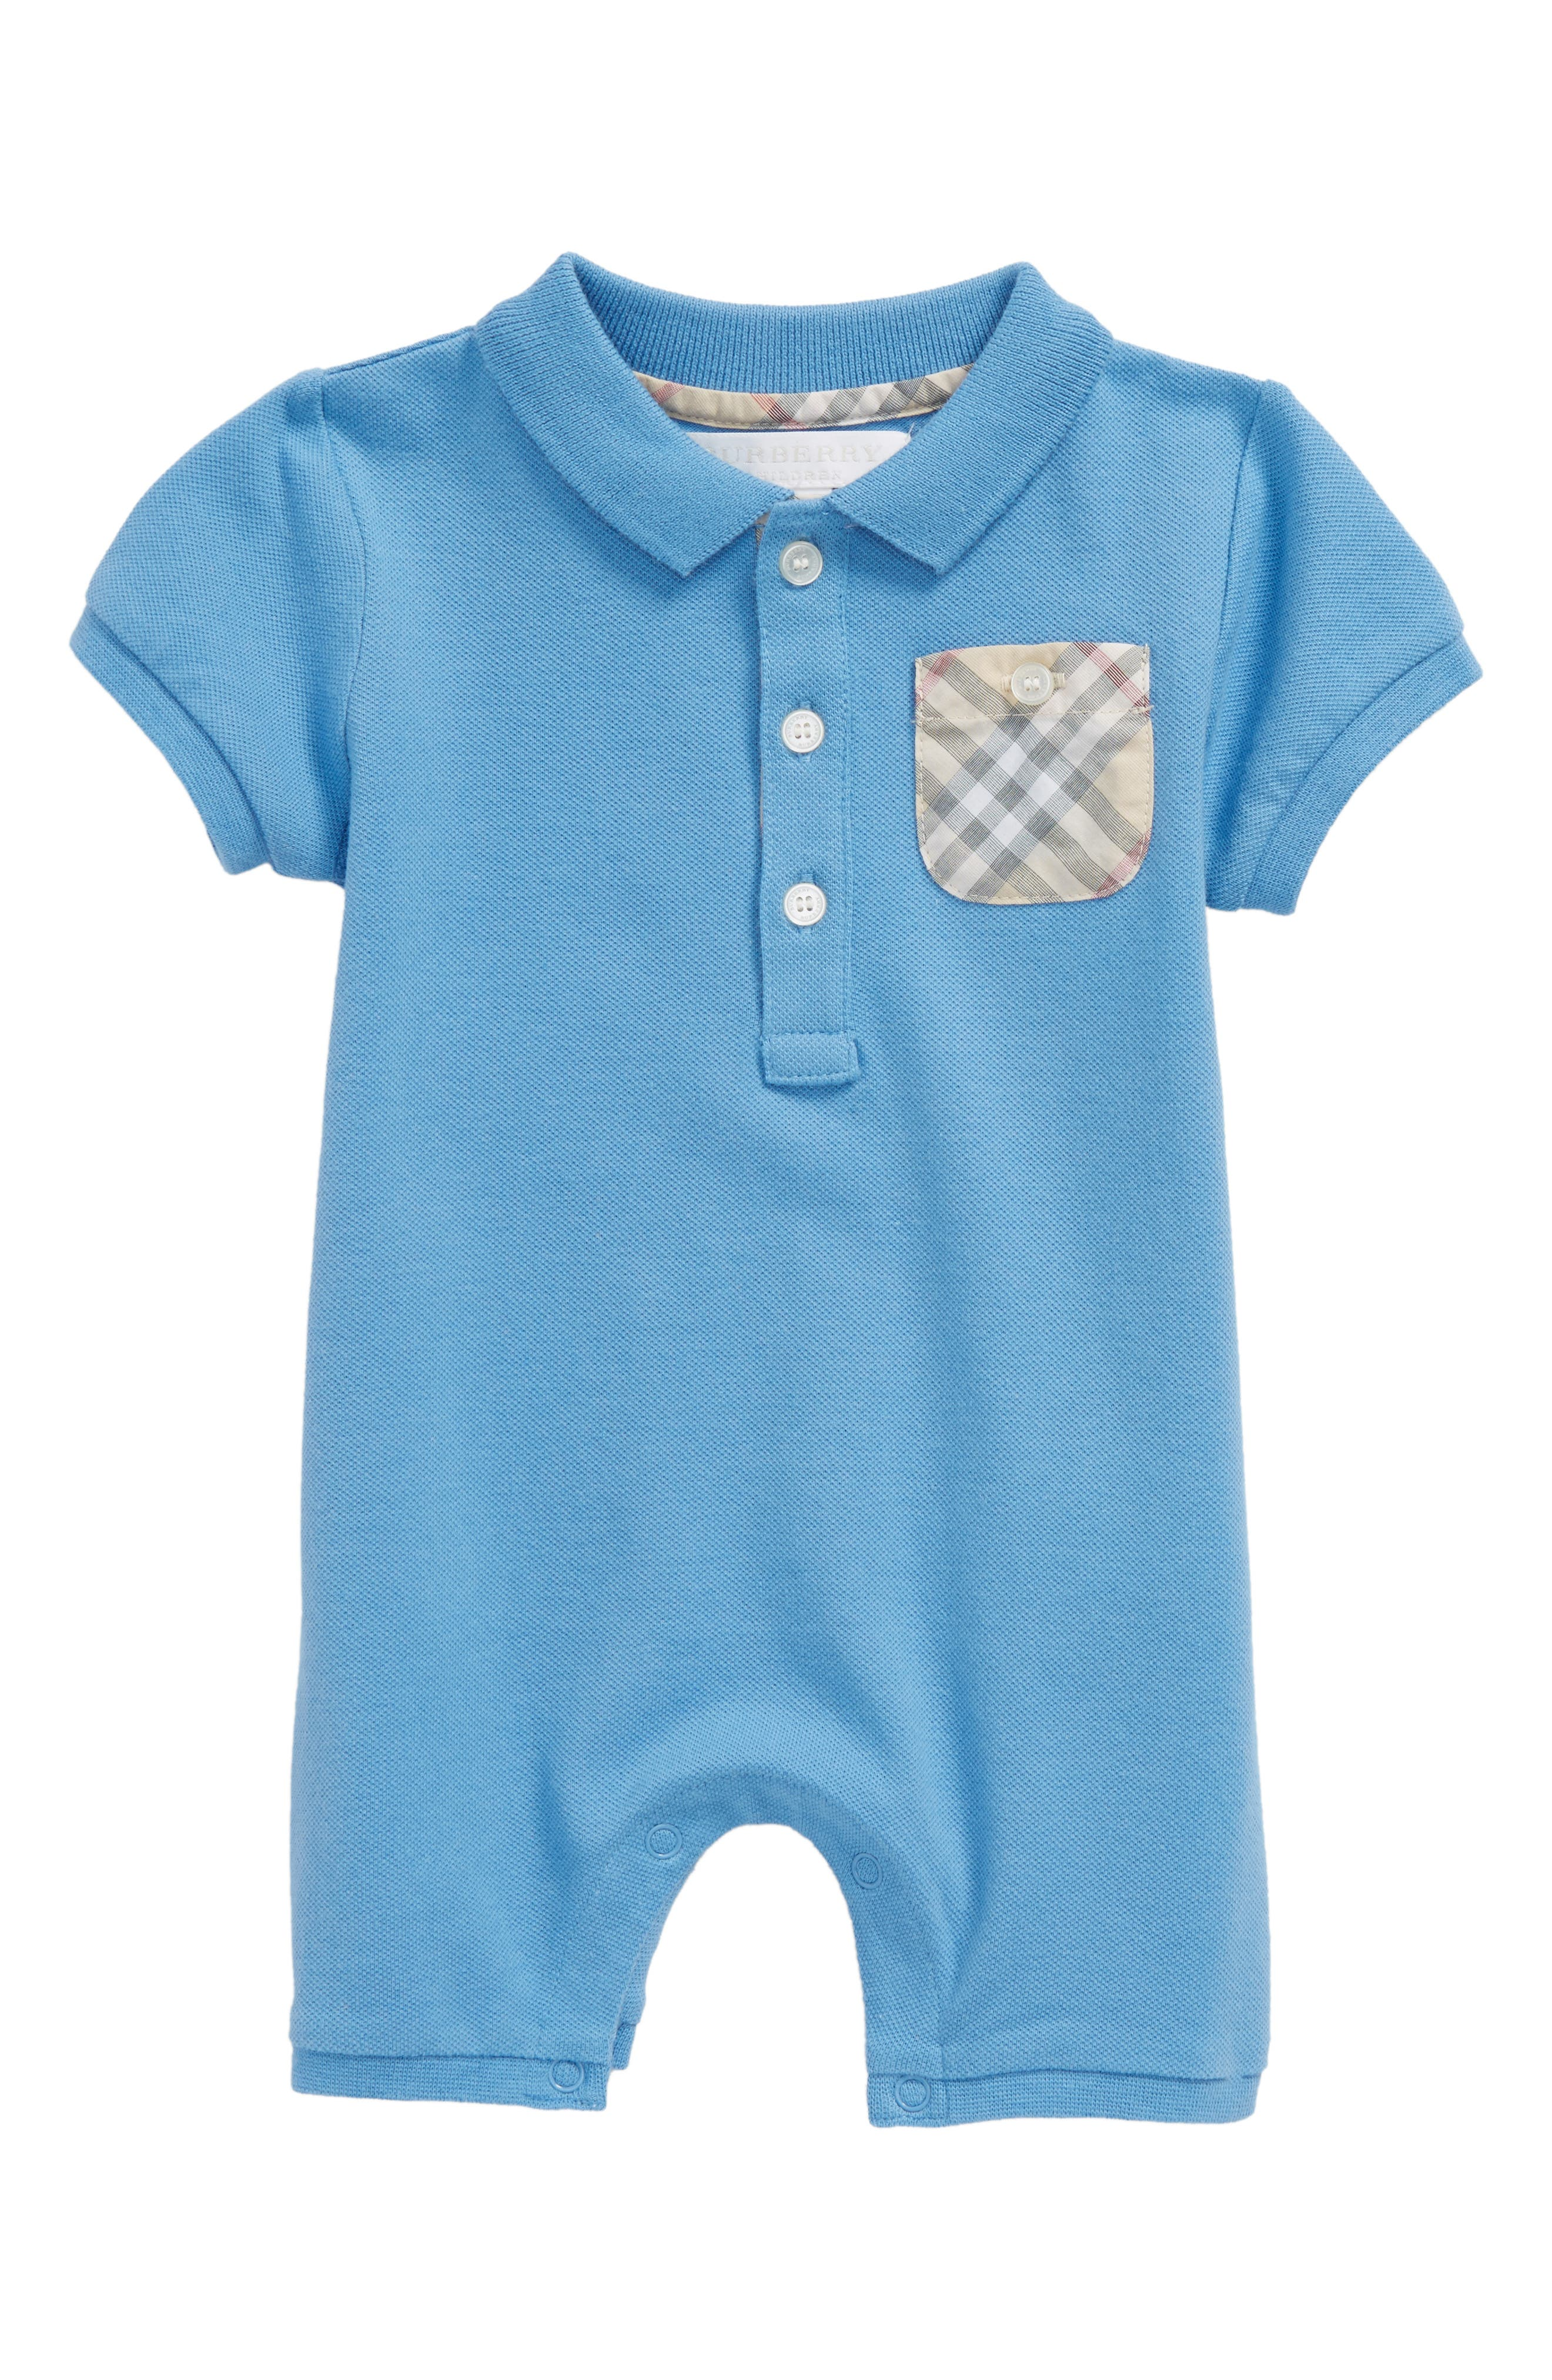 burberry baby boy shirt